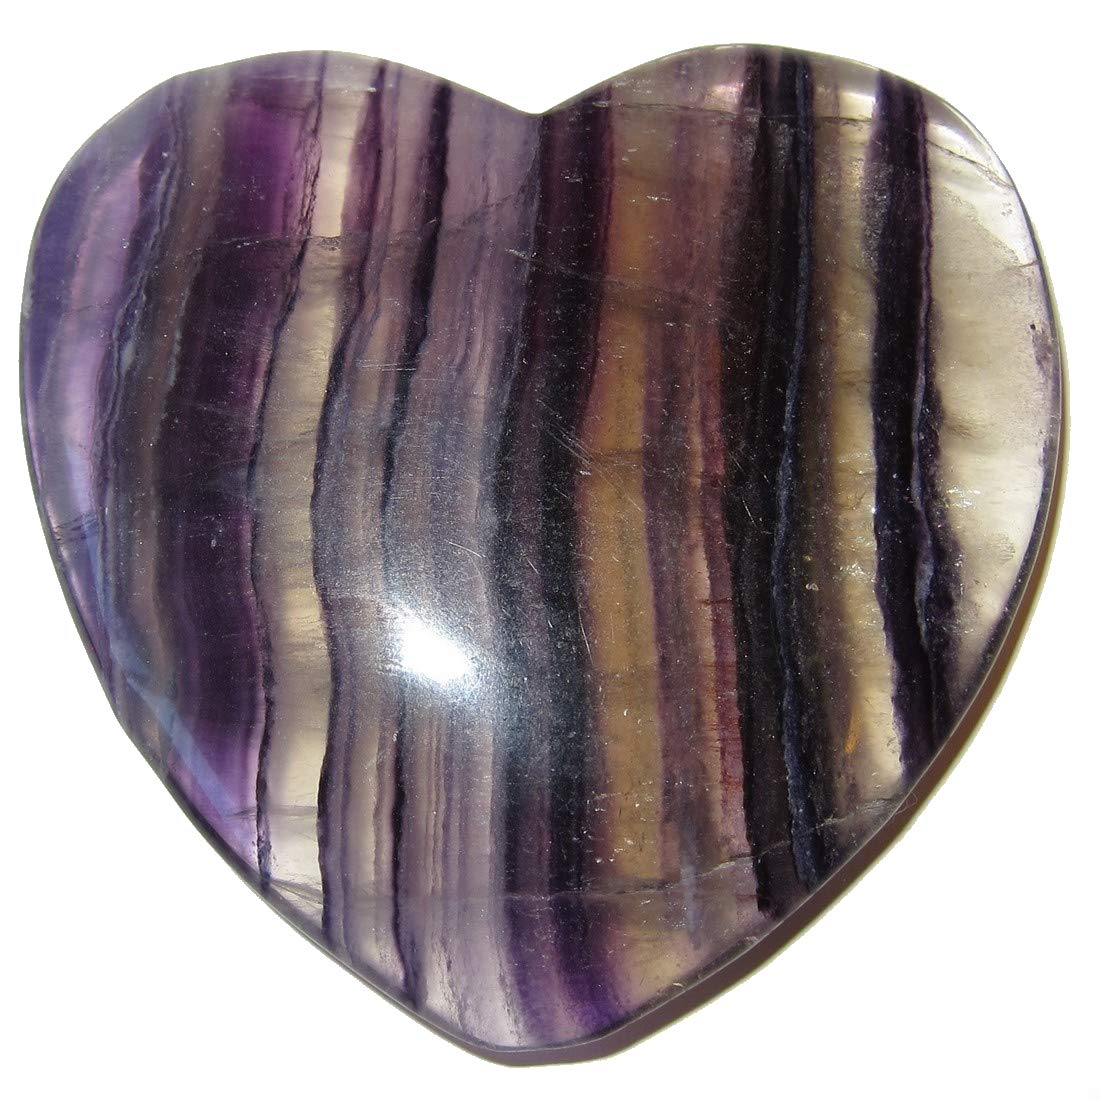 SatinCrystals Fluorite Purple Heart Premium Clear Striped Crystal Bravery Loyalty Love Crystal Healing Stone P01 3.5 Inches Satin Crystals fluoritepurpleheart01